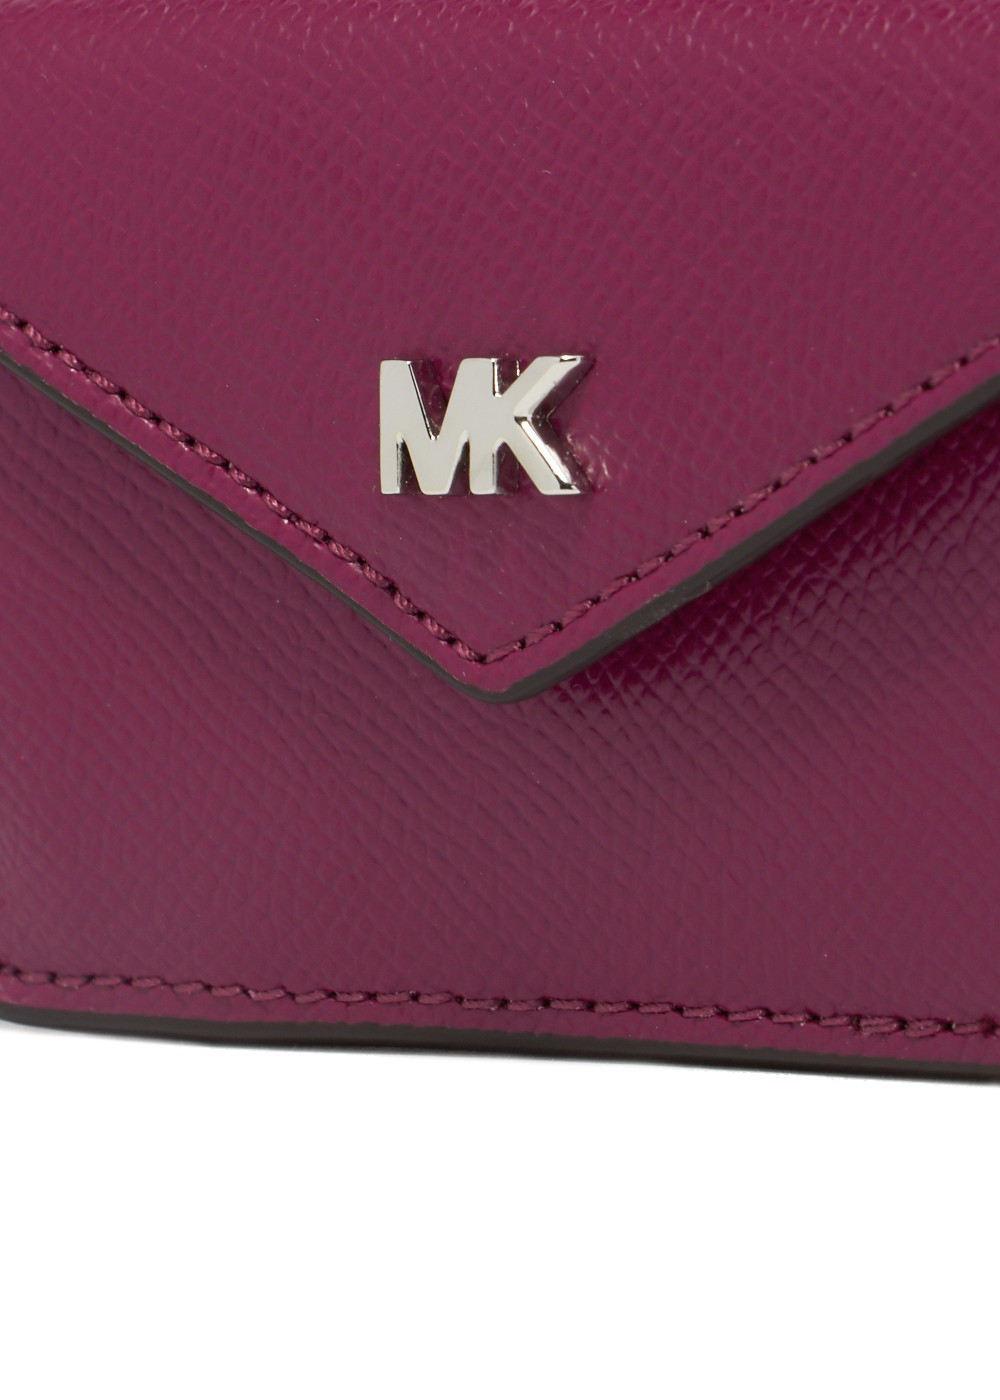 【最大46%OFF】3つ折り財布/MONEY PIECES【GARNET】|GARNET|レディース財布|MICHAEL KORS(A)